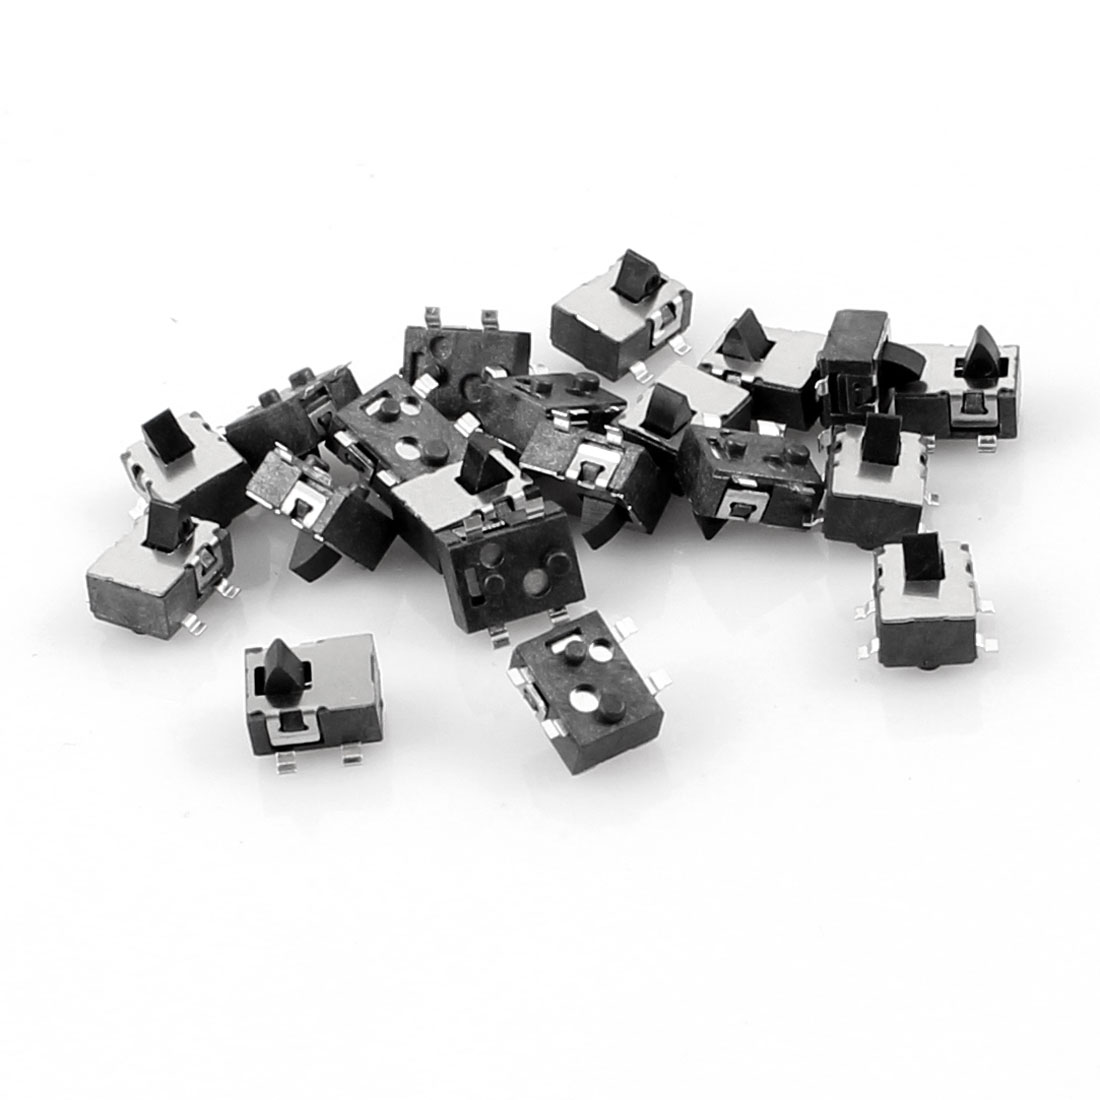 20 Pcs 4.8x3.8mm 4 Pin SPST Momentary Push Button Mini SMD SMT Tactile Switch